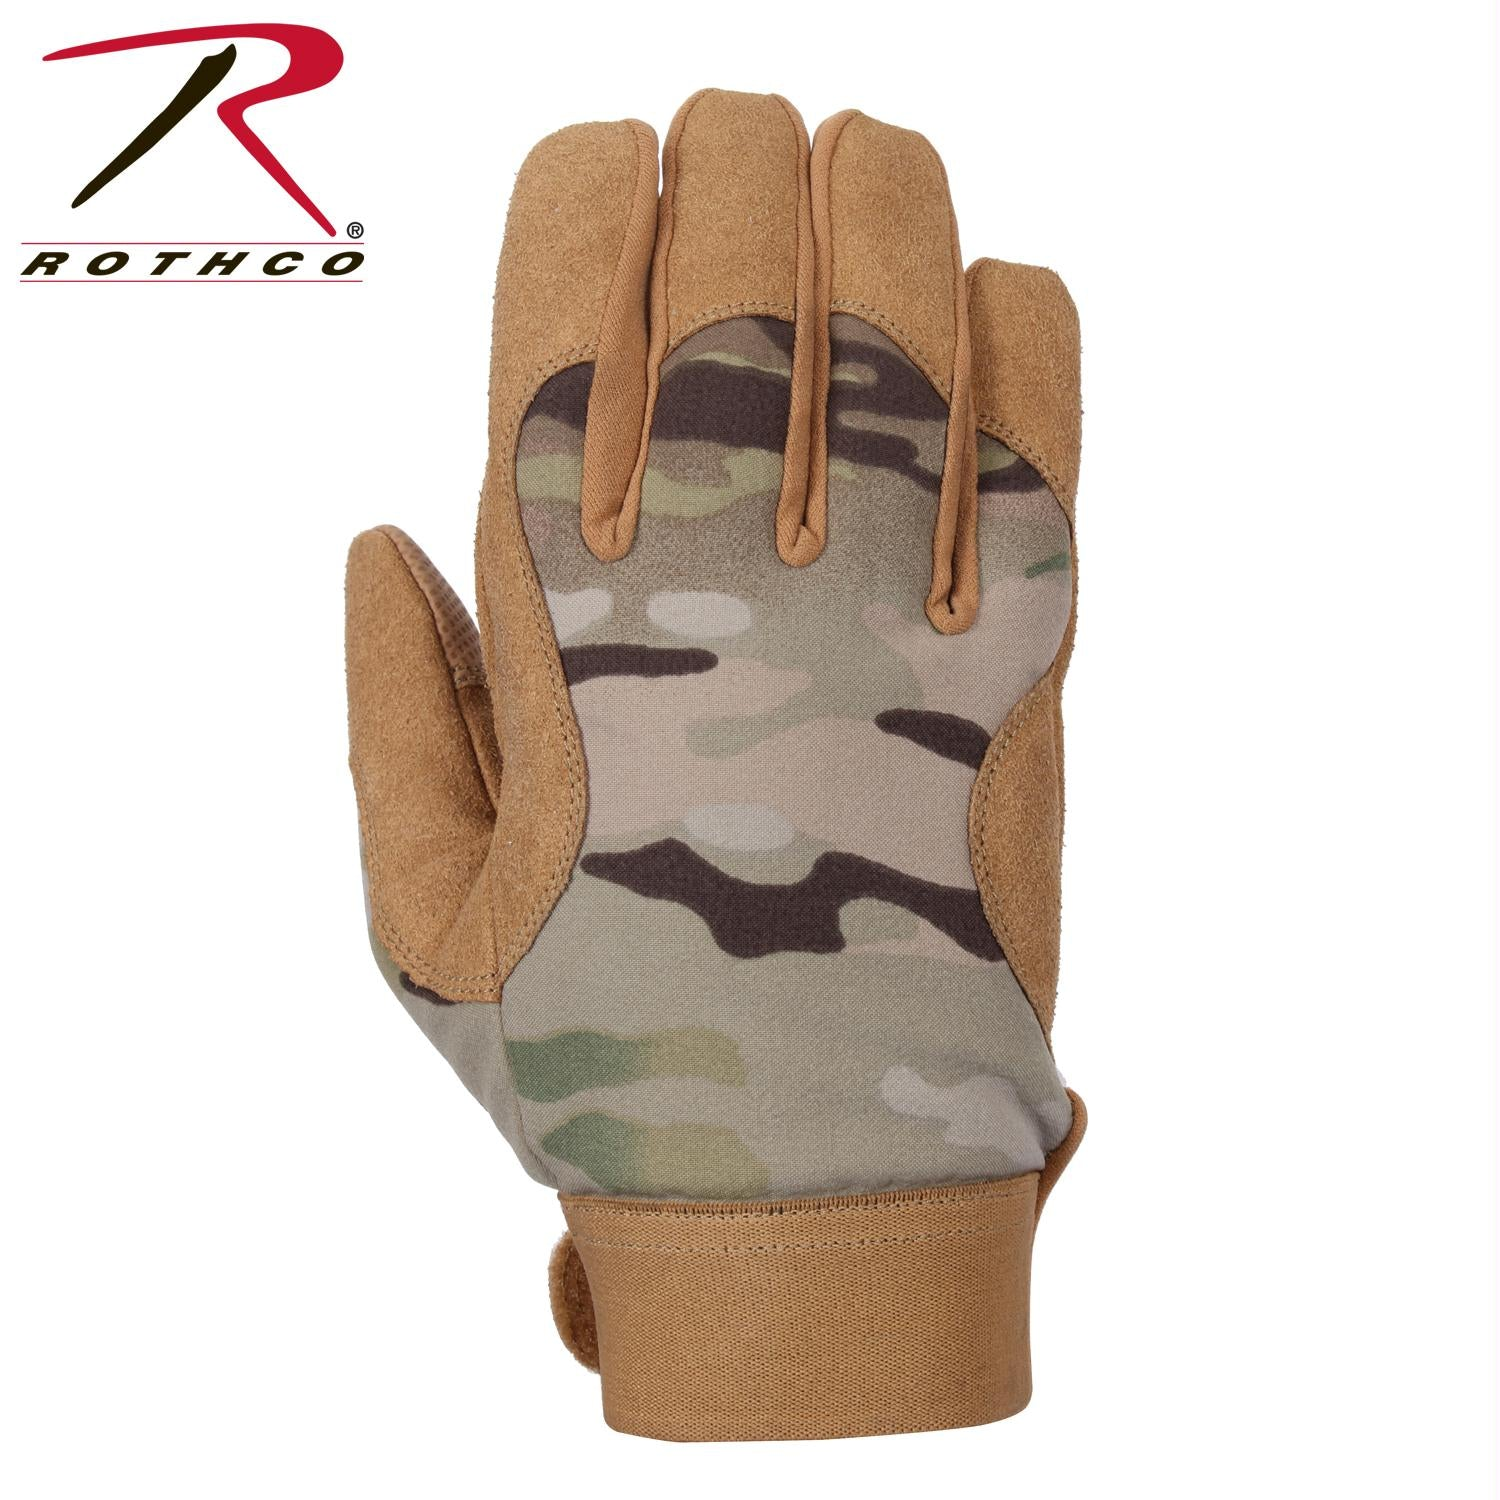 Rothco Military Mechanics Gloves - MultiCam / L